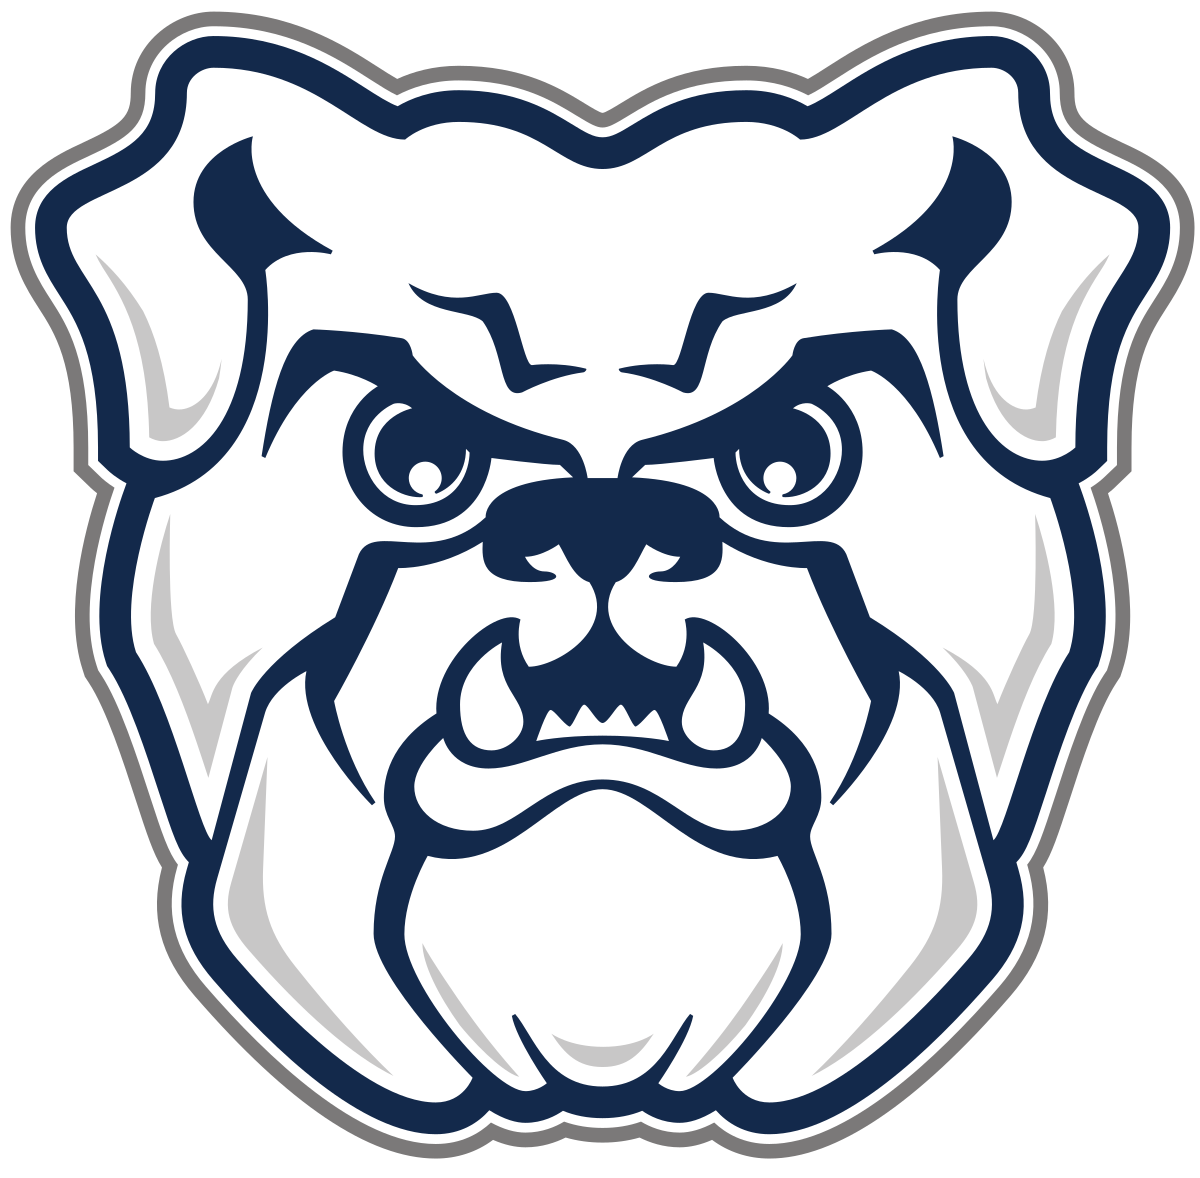 Bulldog basketball playoffs clipart graphic black and white Butler Bulldogs - Wikipedia graphic black and white